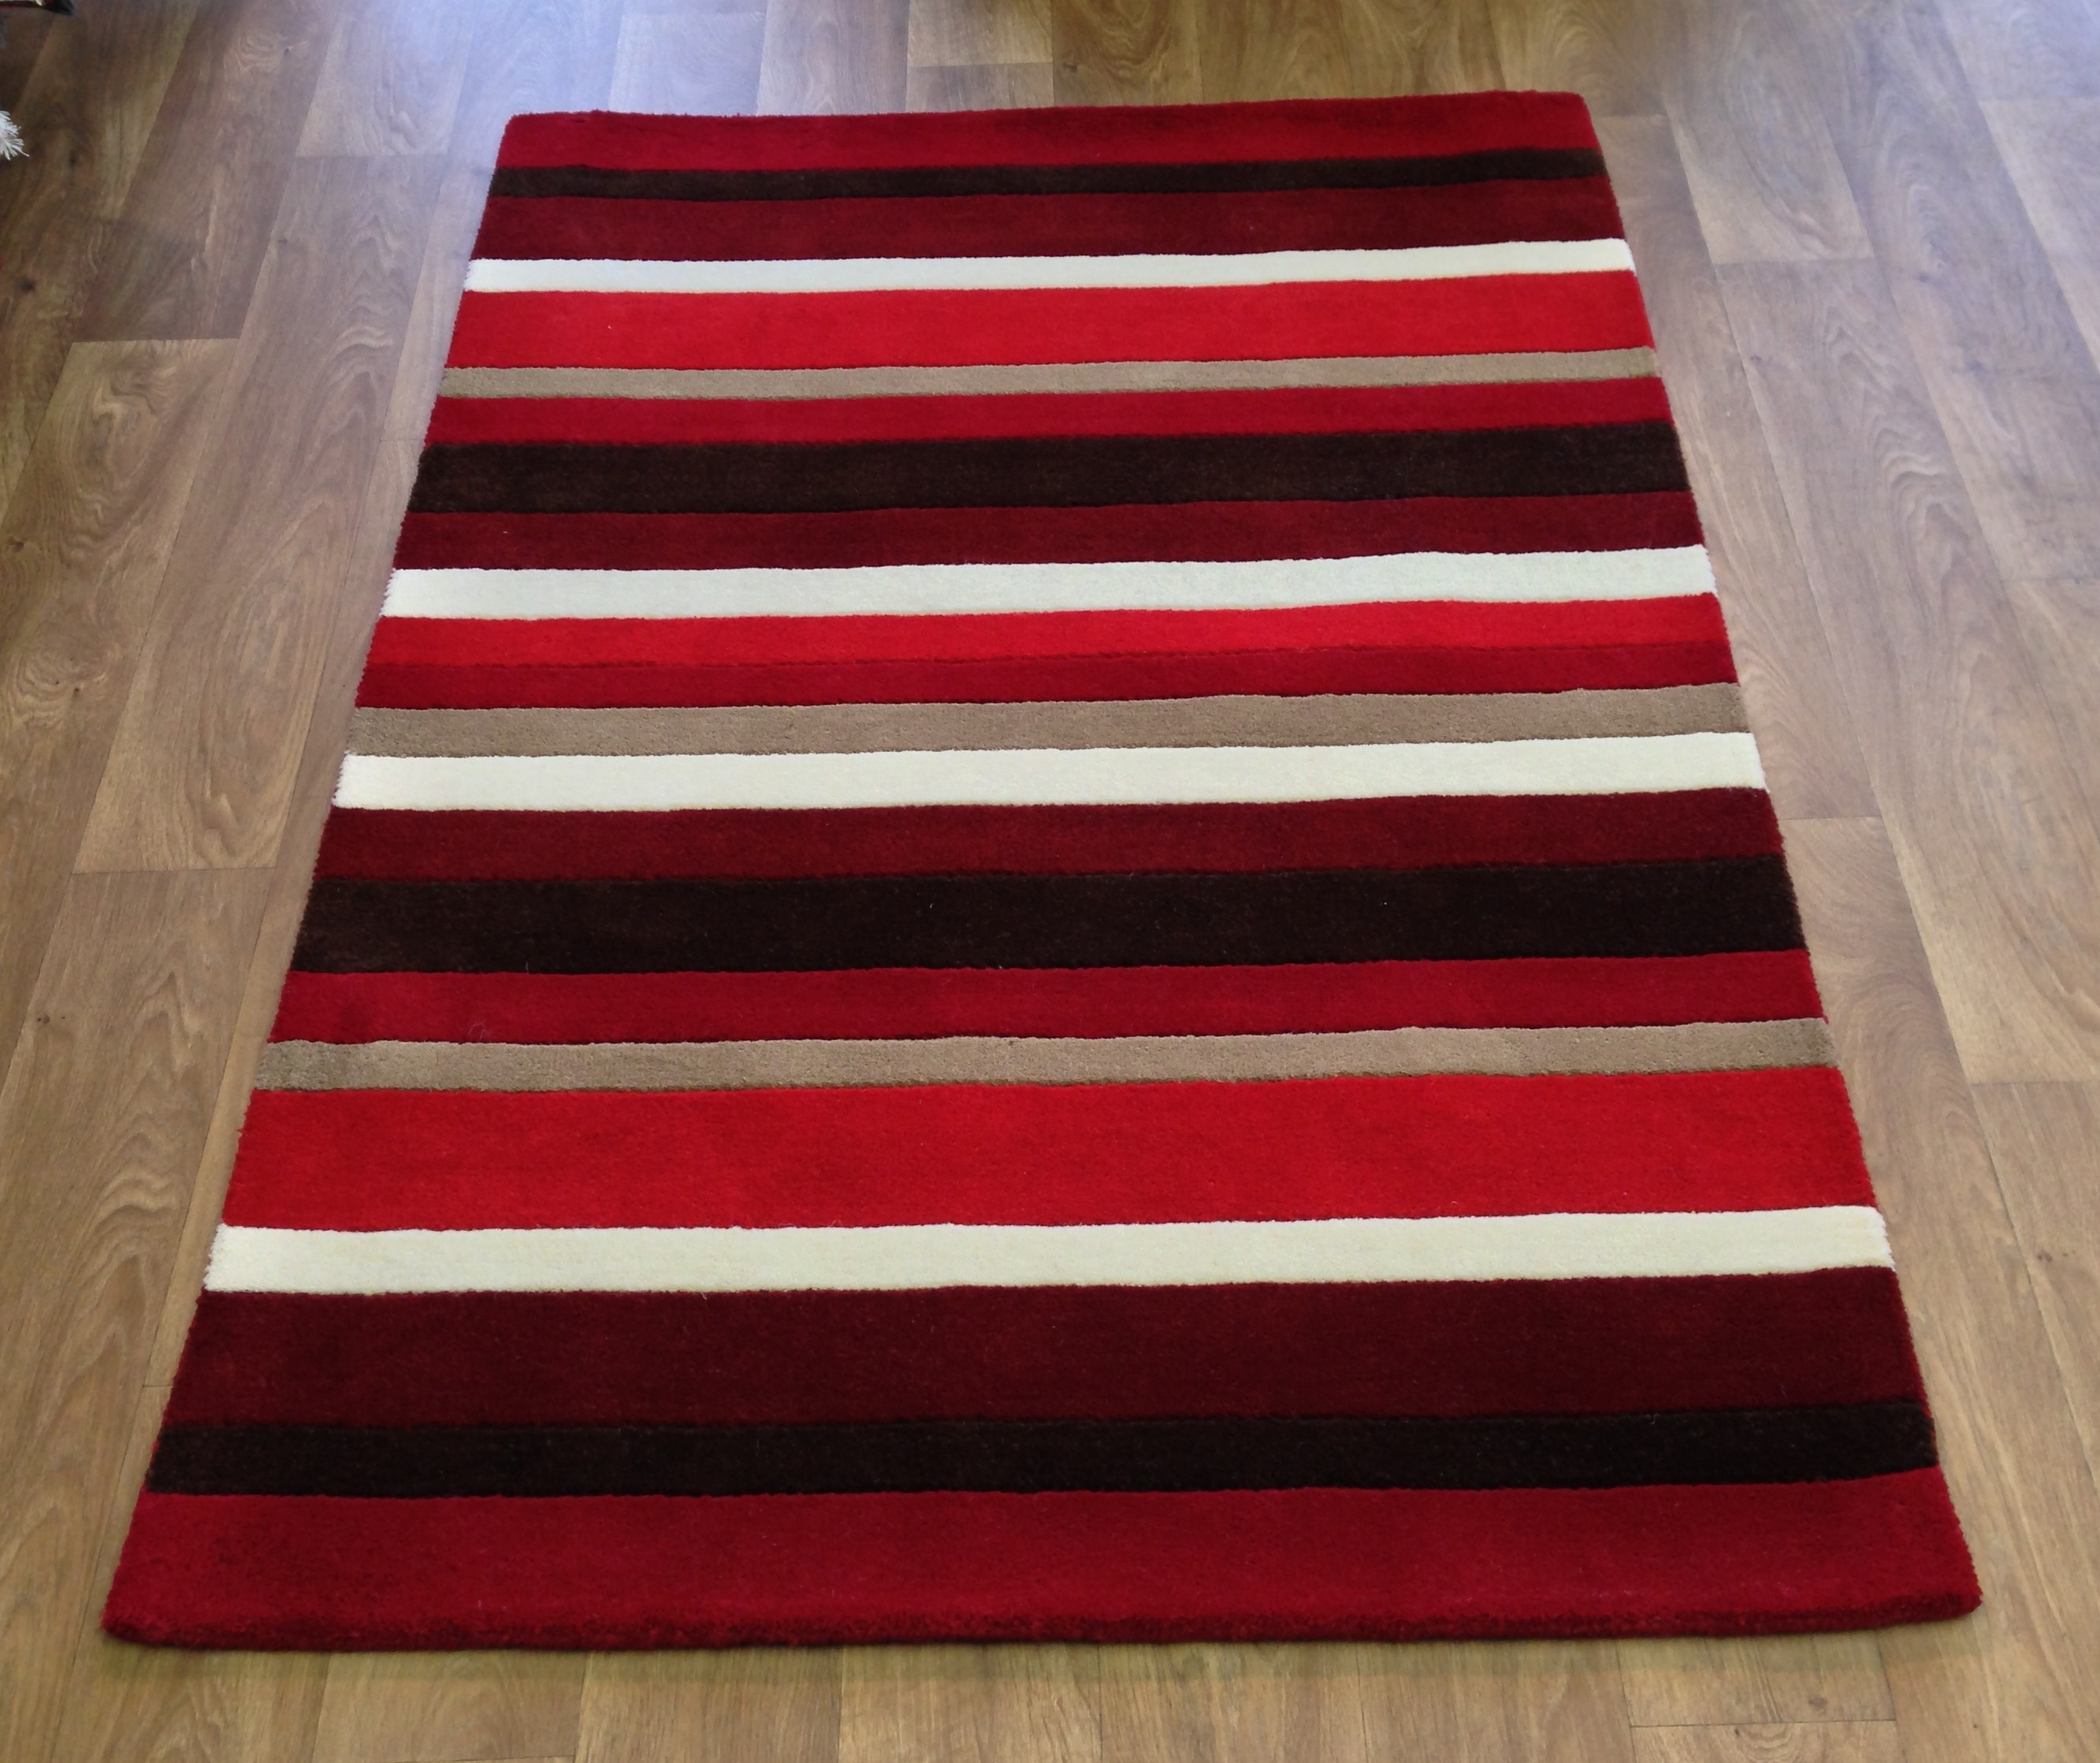 Rug modern striped wool red brown beige cream small medium for Cream and red rugs